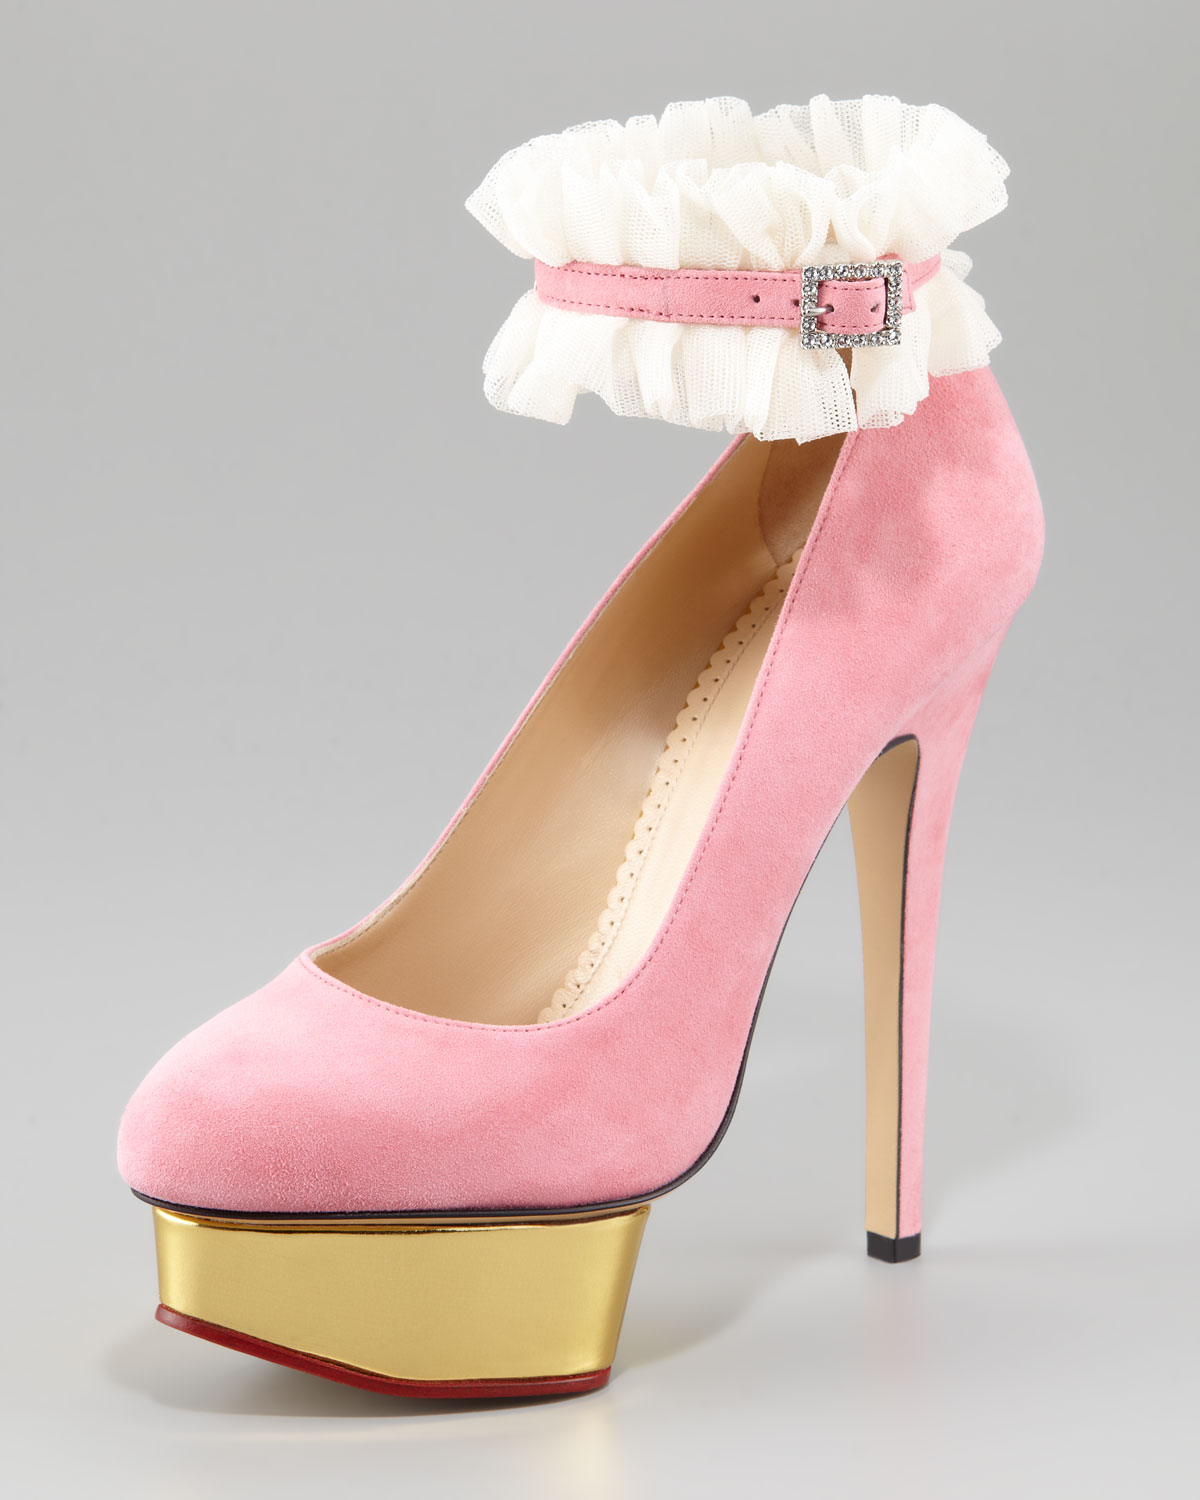 90675a64039 Lyst - Charlotte Olympia Dolly Island Suede Platform Pump Light Pink ...